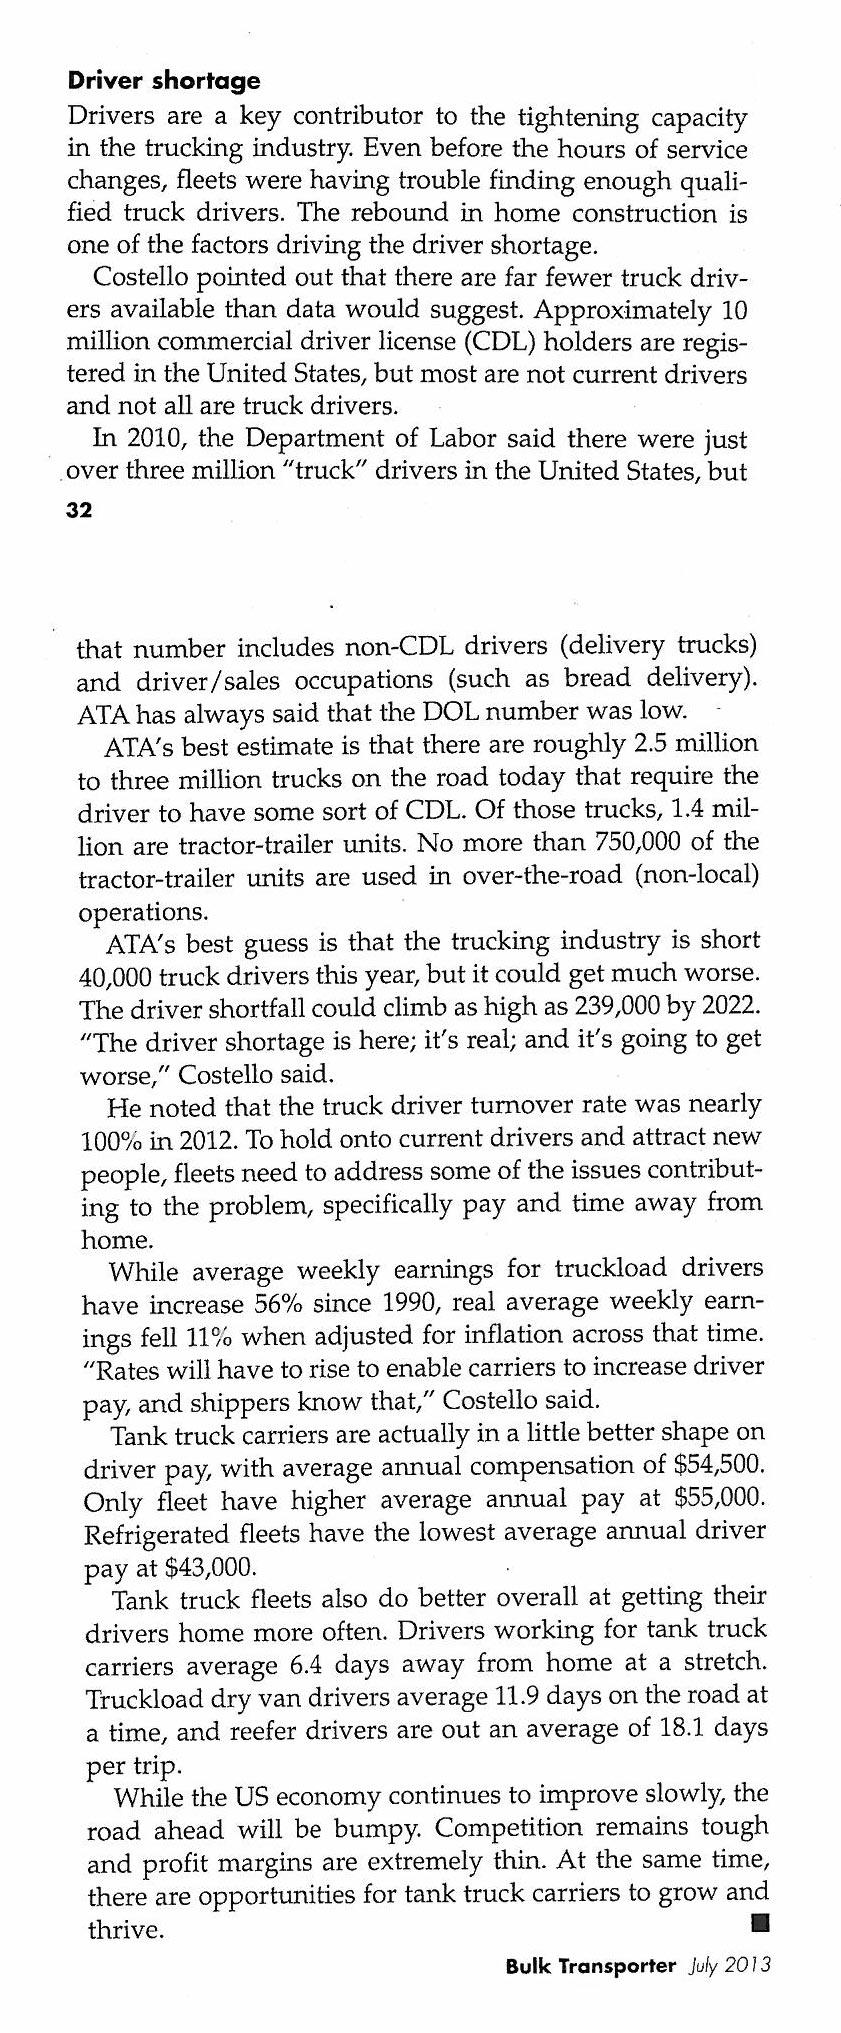 Driver shortage newspaper clipping